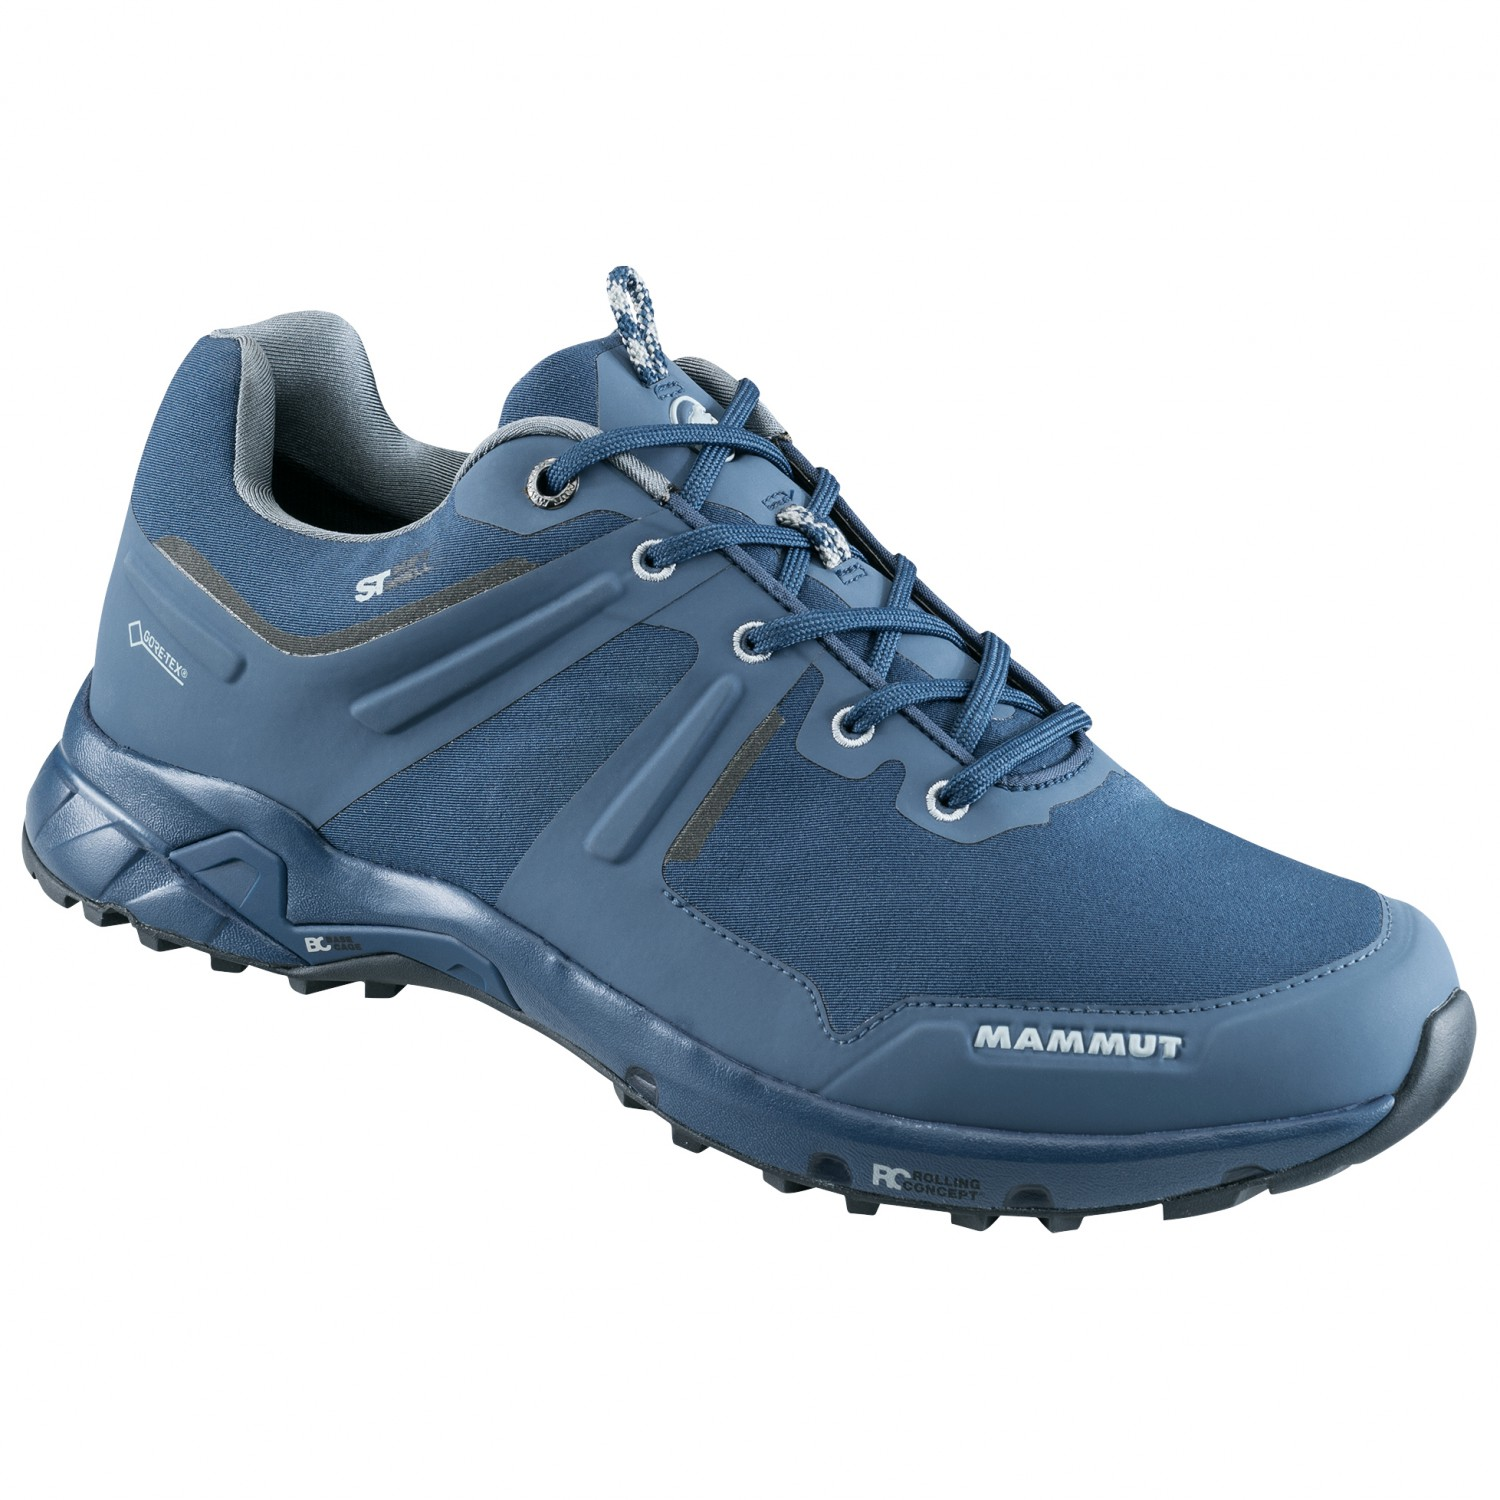 Mammut Ultimate Pro Low GTX - Multisport Shoes Men s  5b5d46e9833